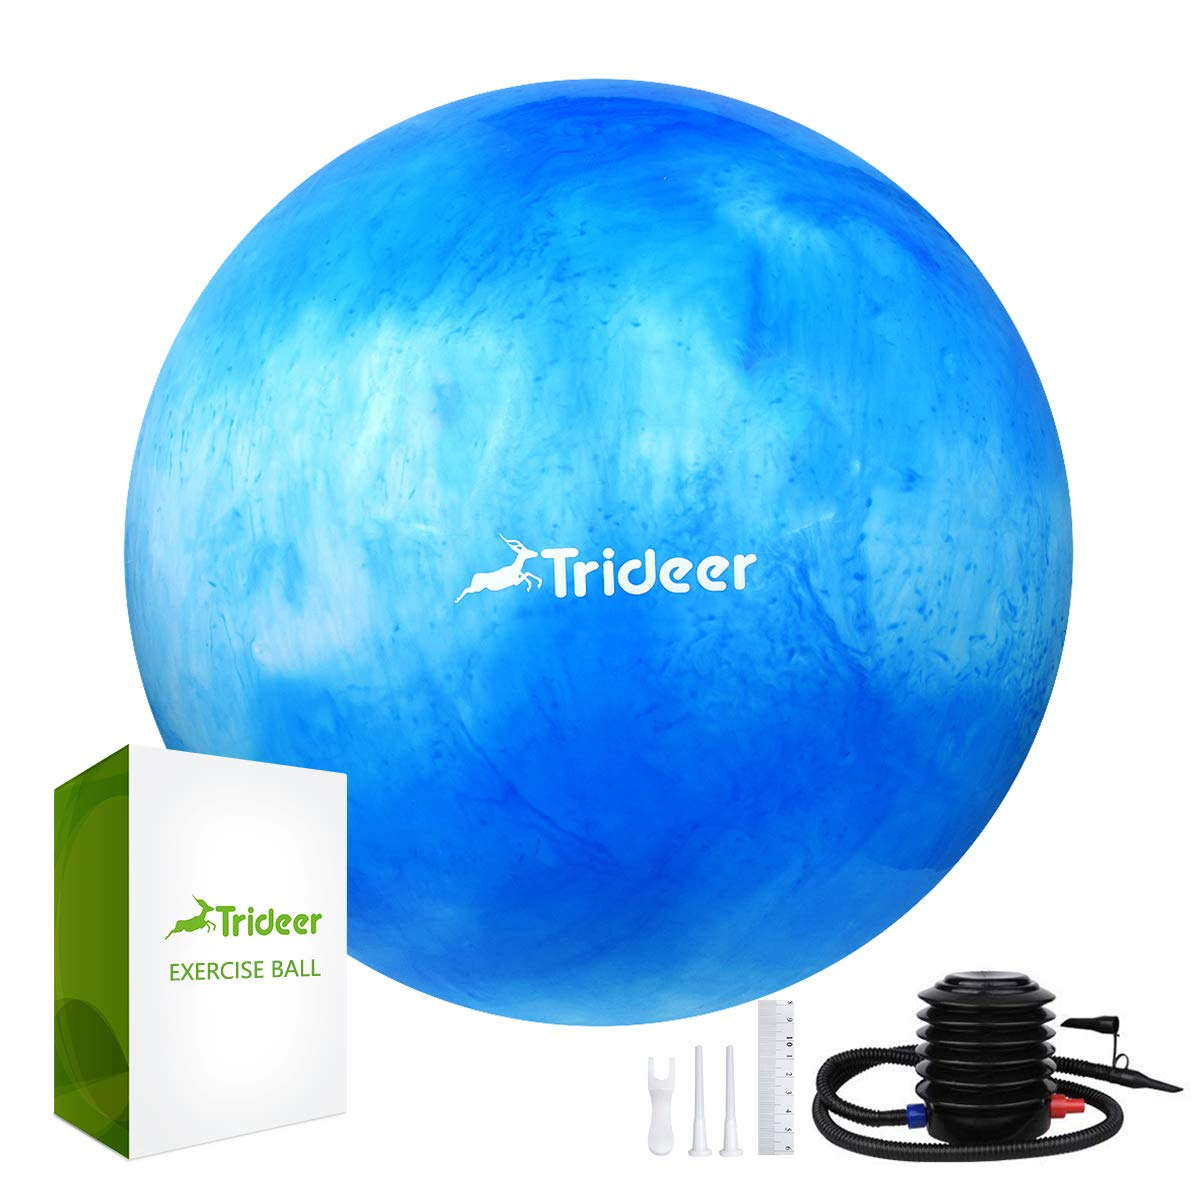 Trideer Exercise Ball (Multiple Color), Yoga Ball, Birthing Ball with Quick Pump, Anti-Burst & Extra Thick, Heavy Duty Ball Chair, Stability Ball Supports 2200lbs (B#White&Blue, M (48-55cm))